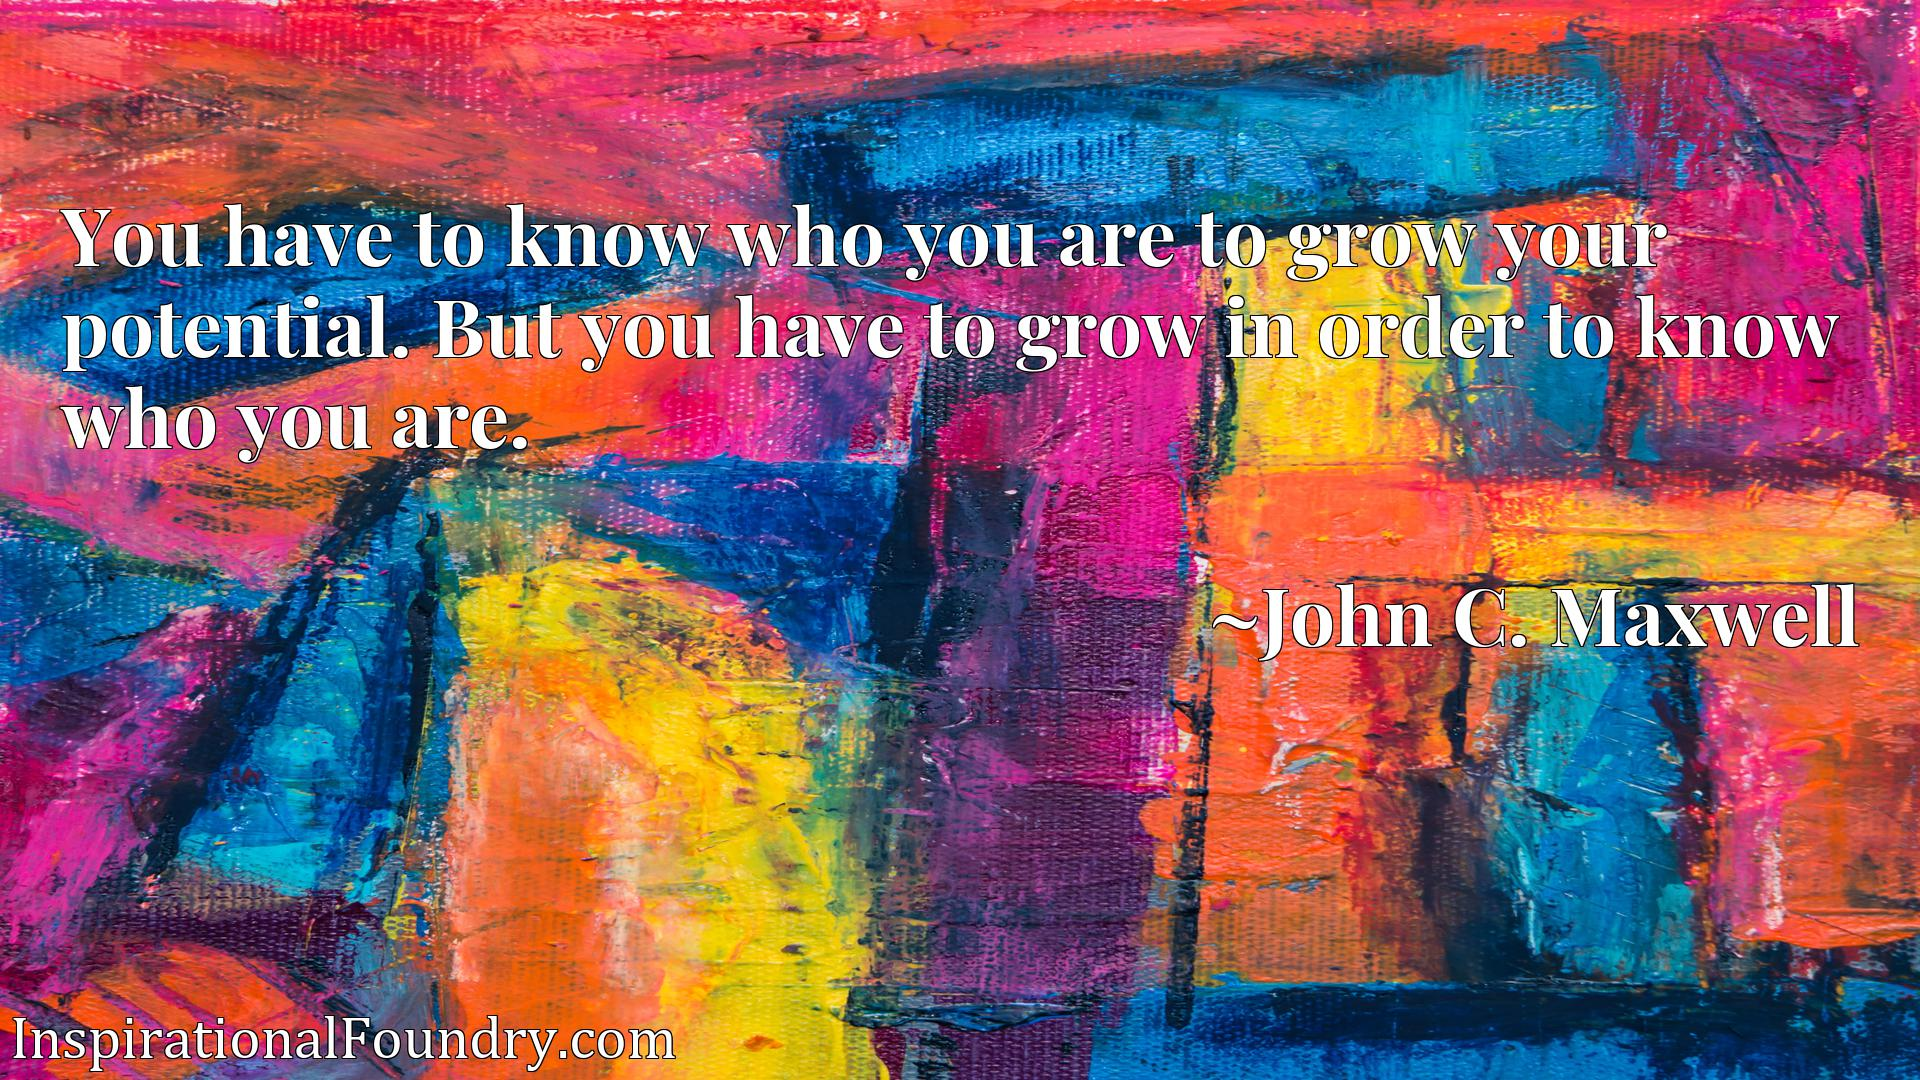 You have to know who you are to grow your potential. But you have to grow in order to know who you are.